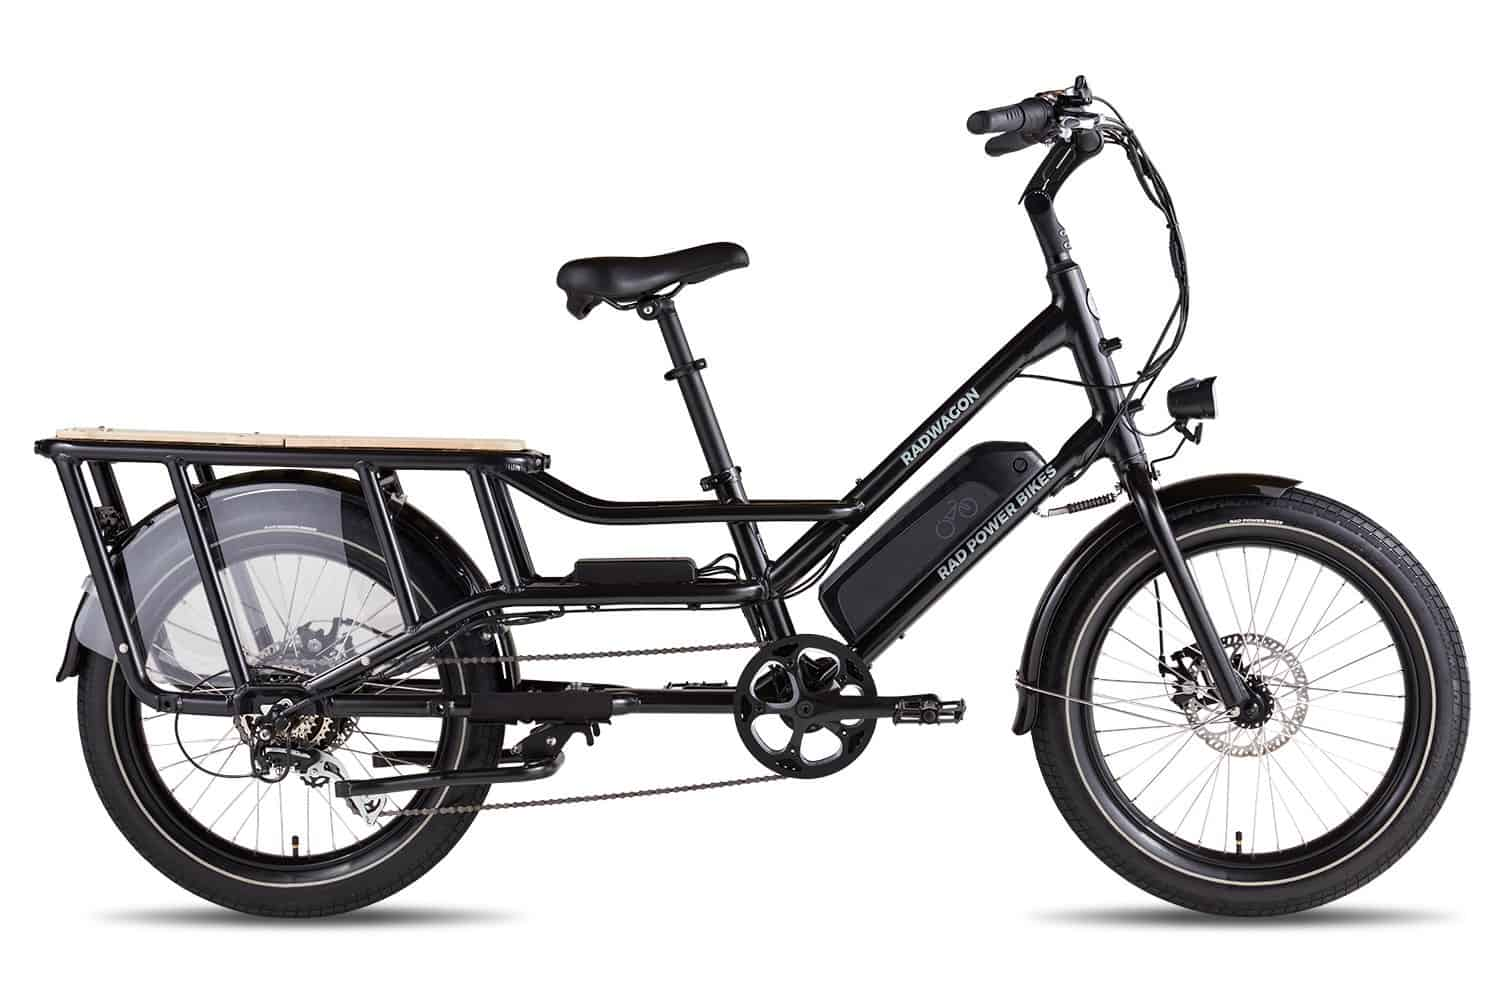 Recreational ebike